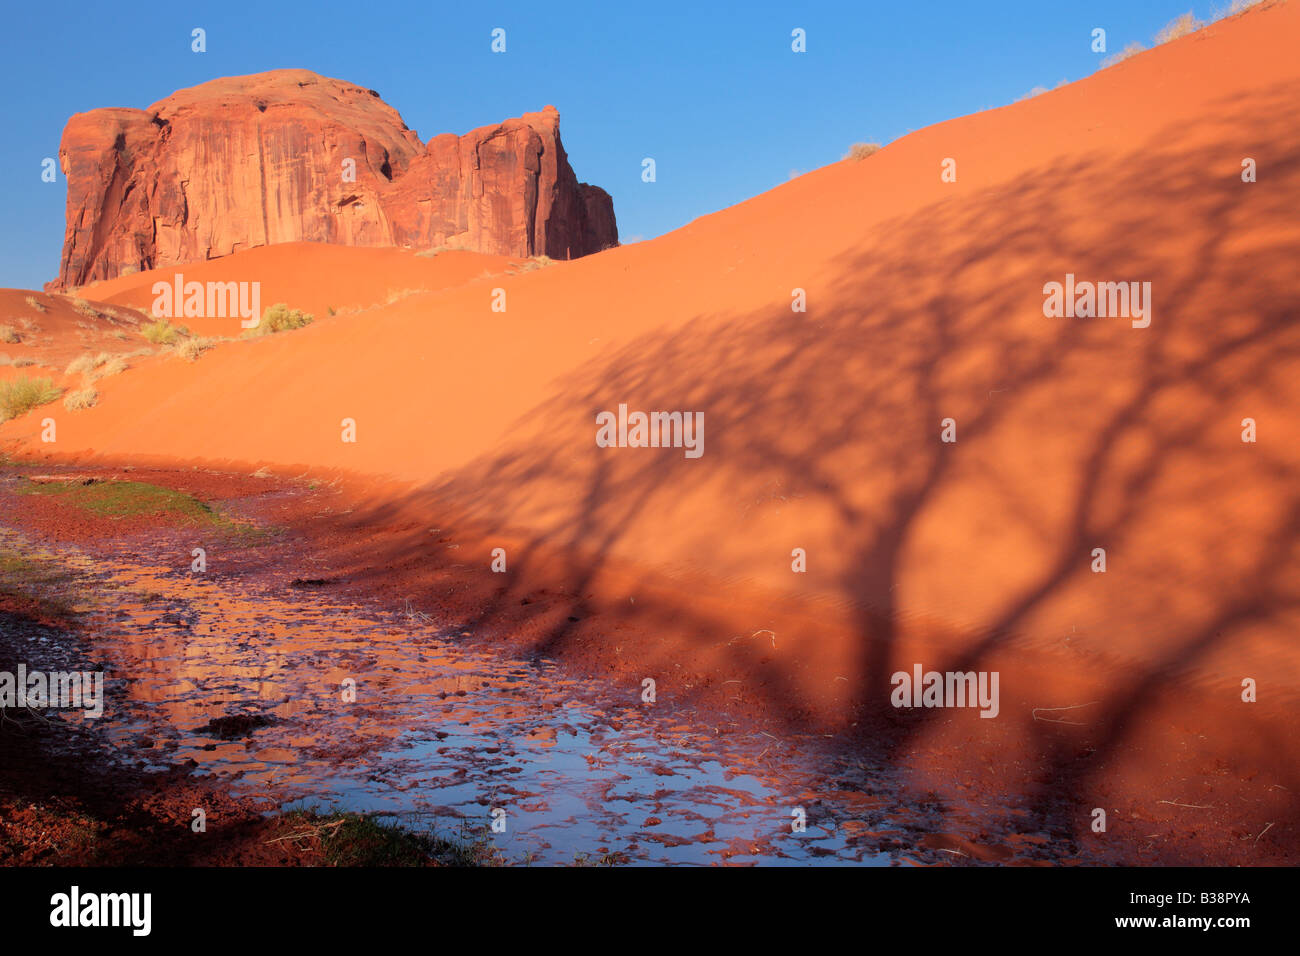 Sand Springs in Monument Valley, under the shadow of a nearby tree - Stock Image